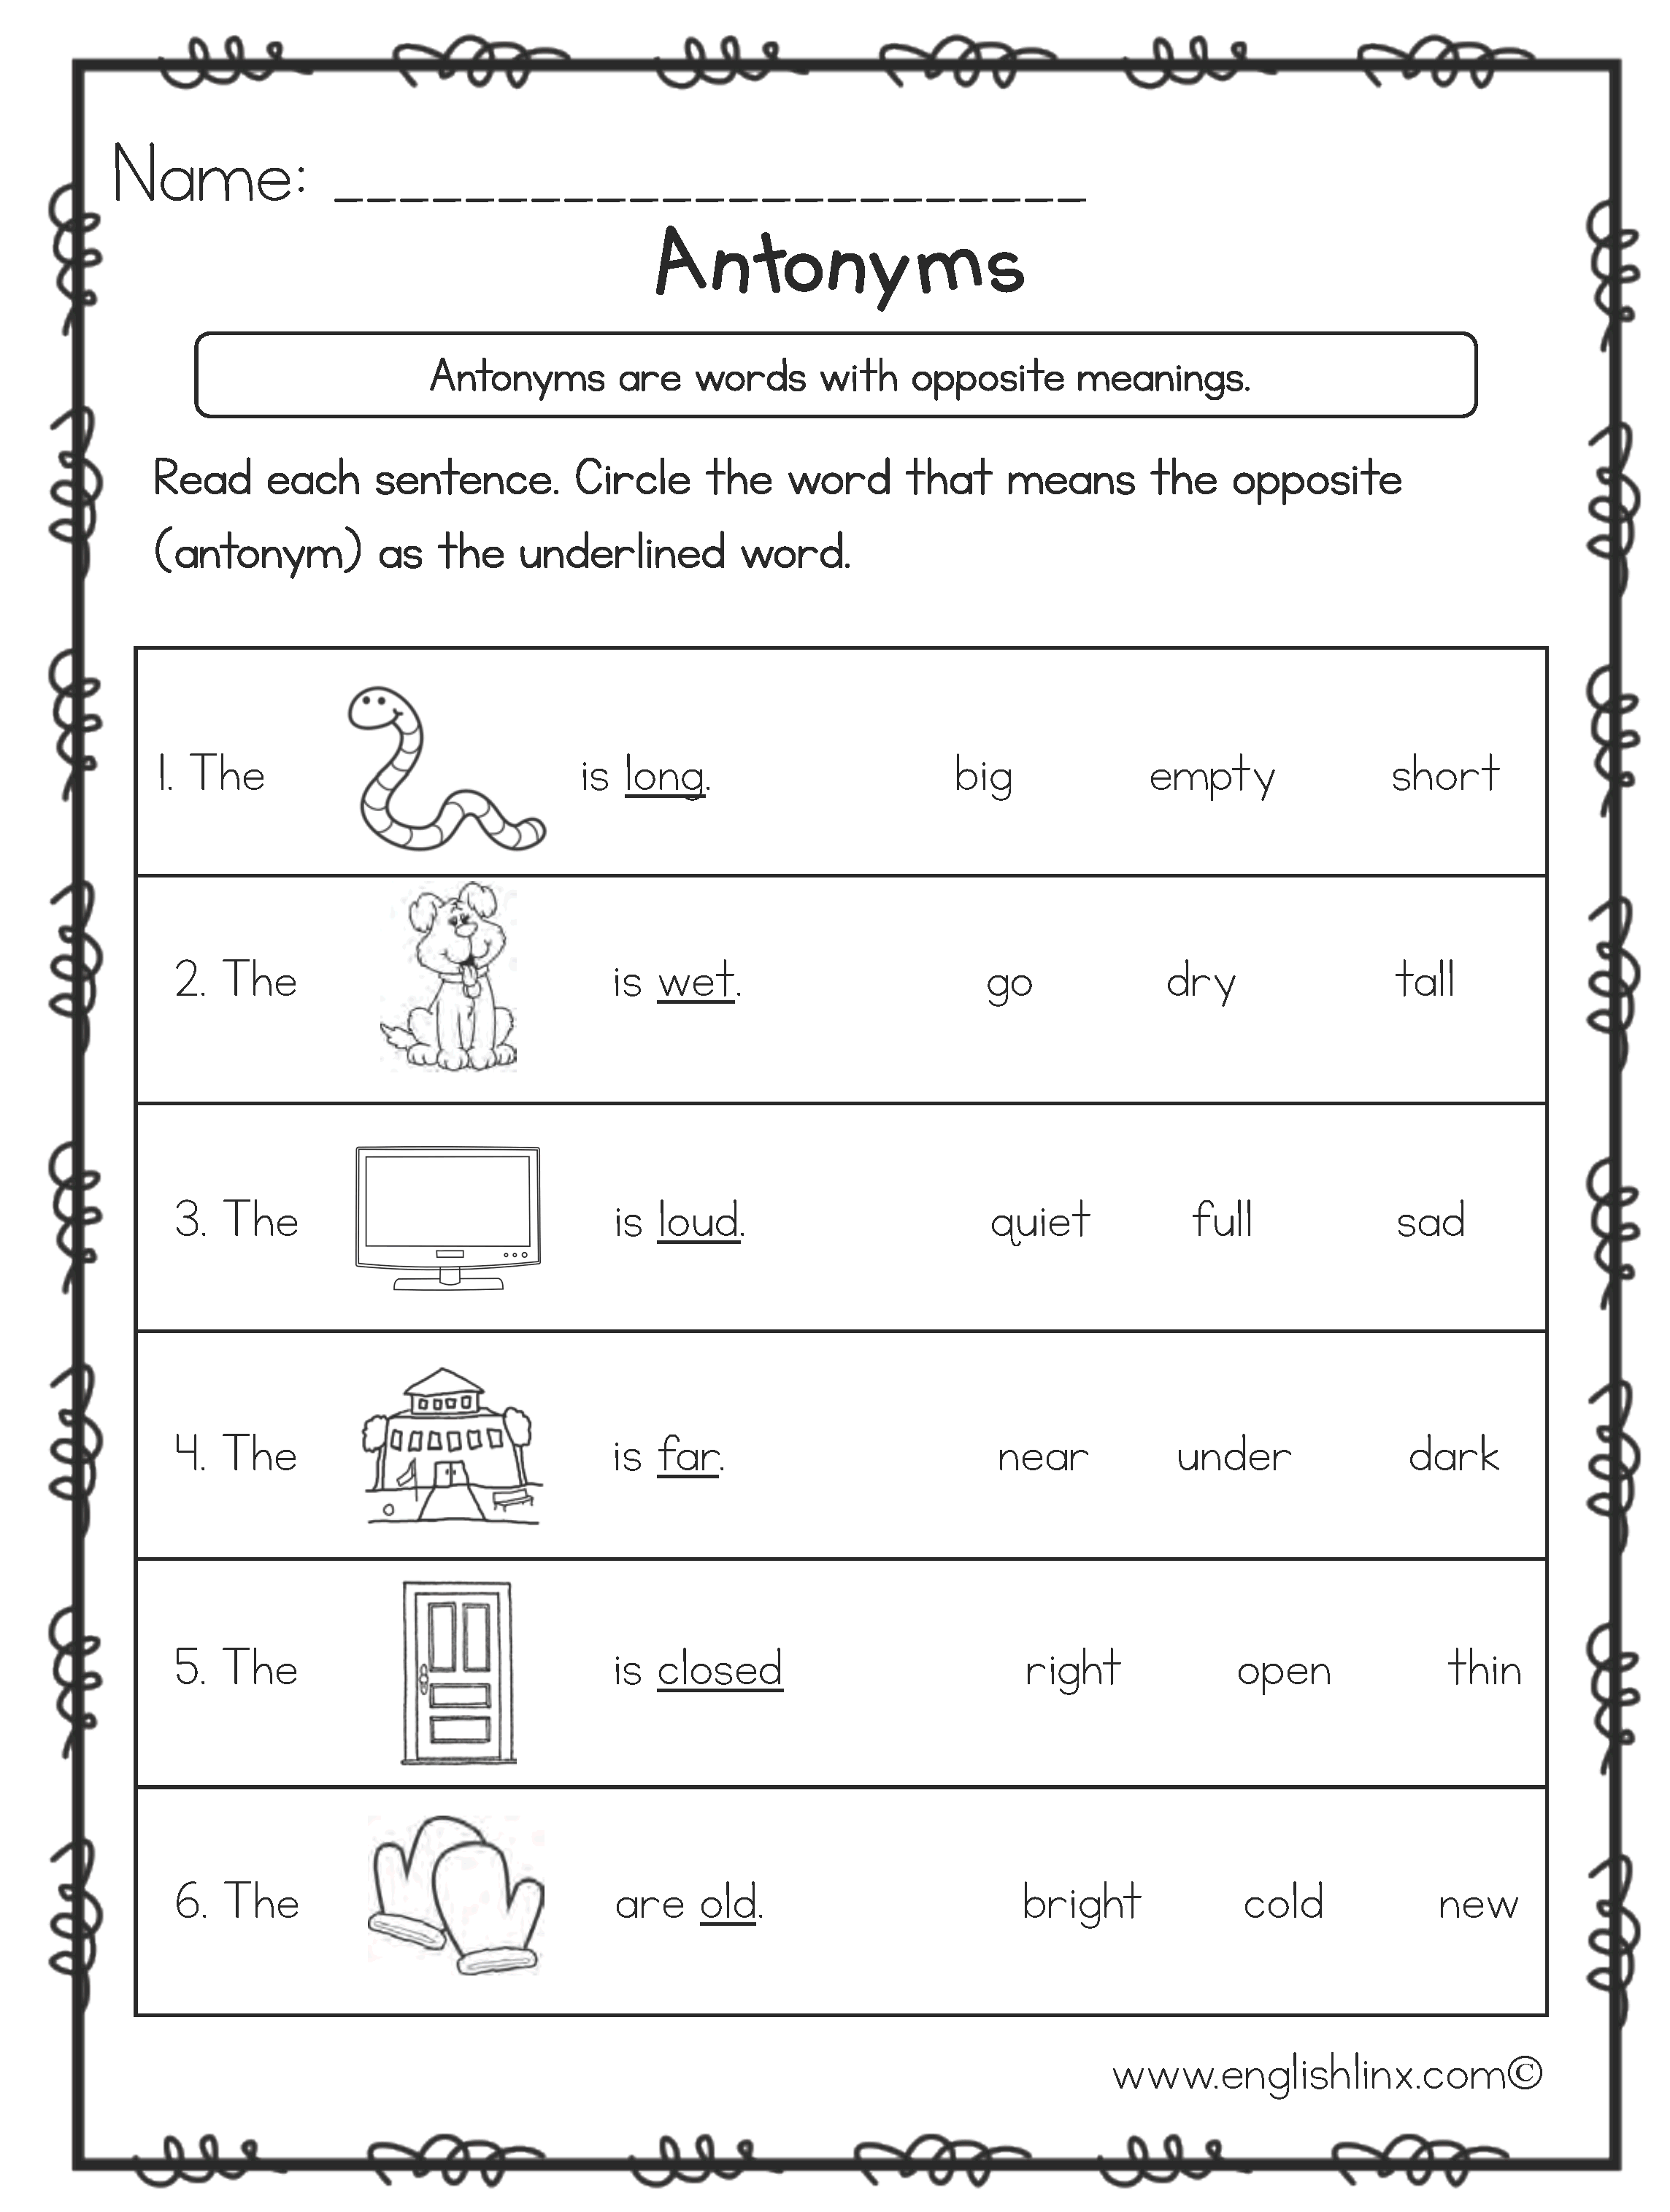 Opposite Antonyms Worksheets | Great English Tools | Pinterest ...